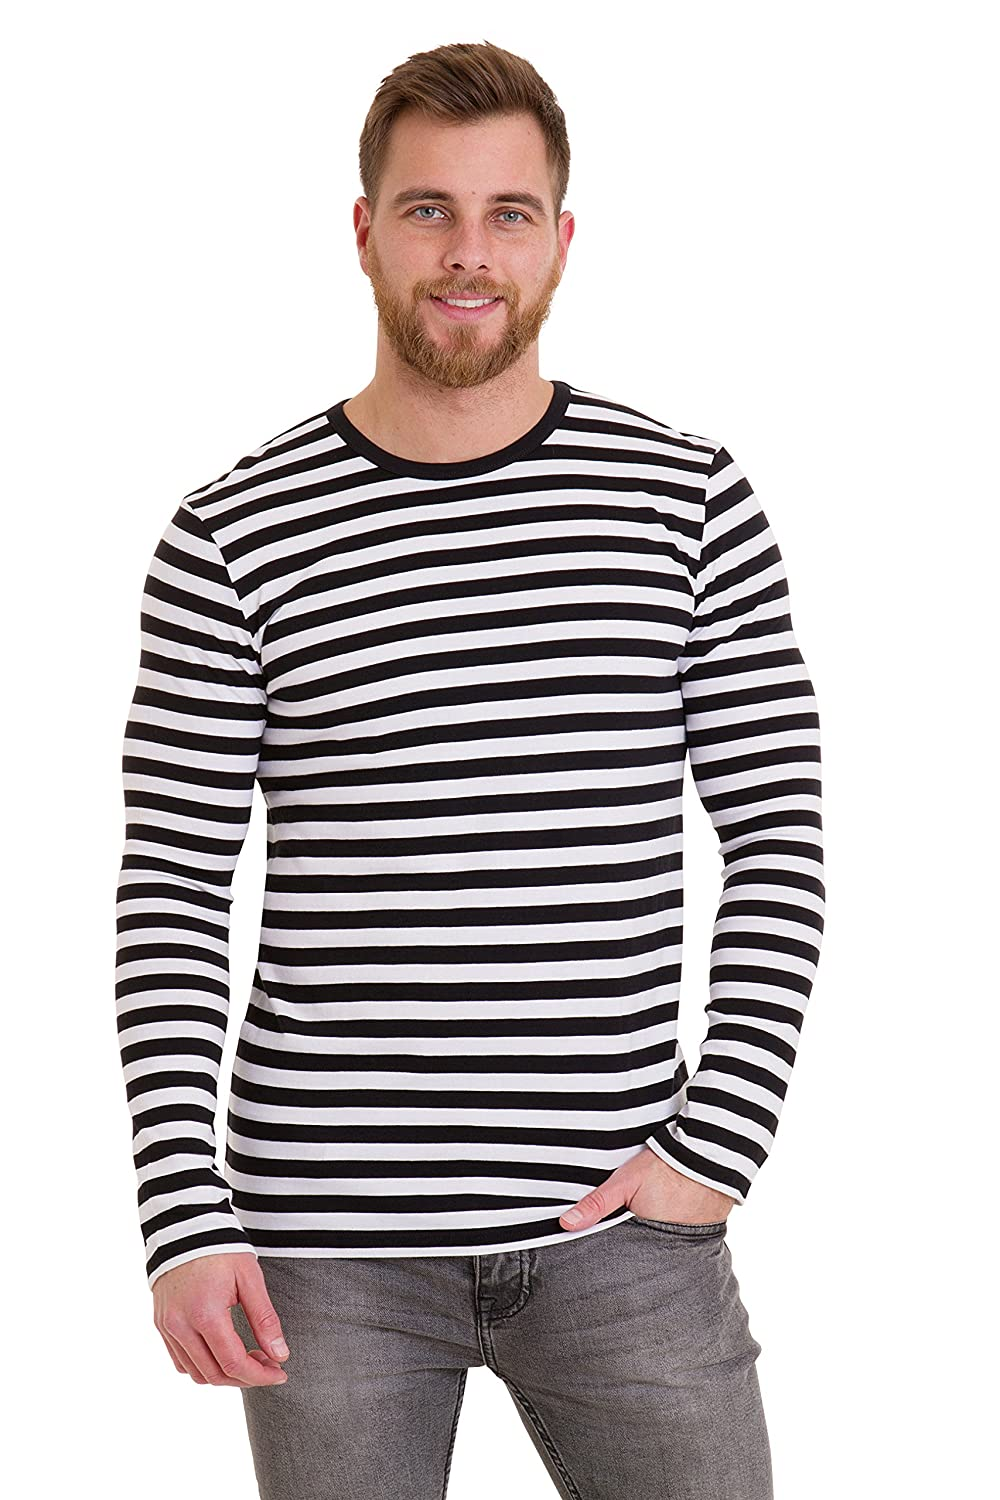 1960s – 70s Mens Shirts- Disco Shirts, Hippie Shirts Mens 60s Retro Black & White Striped Long Sleeve T Shirt $19.95 AT vintagedancer.com